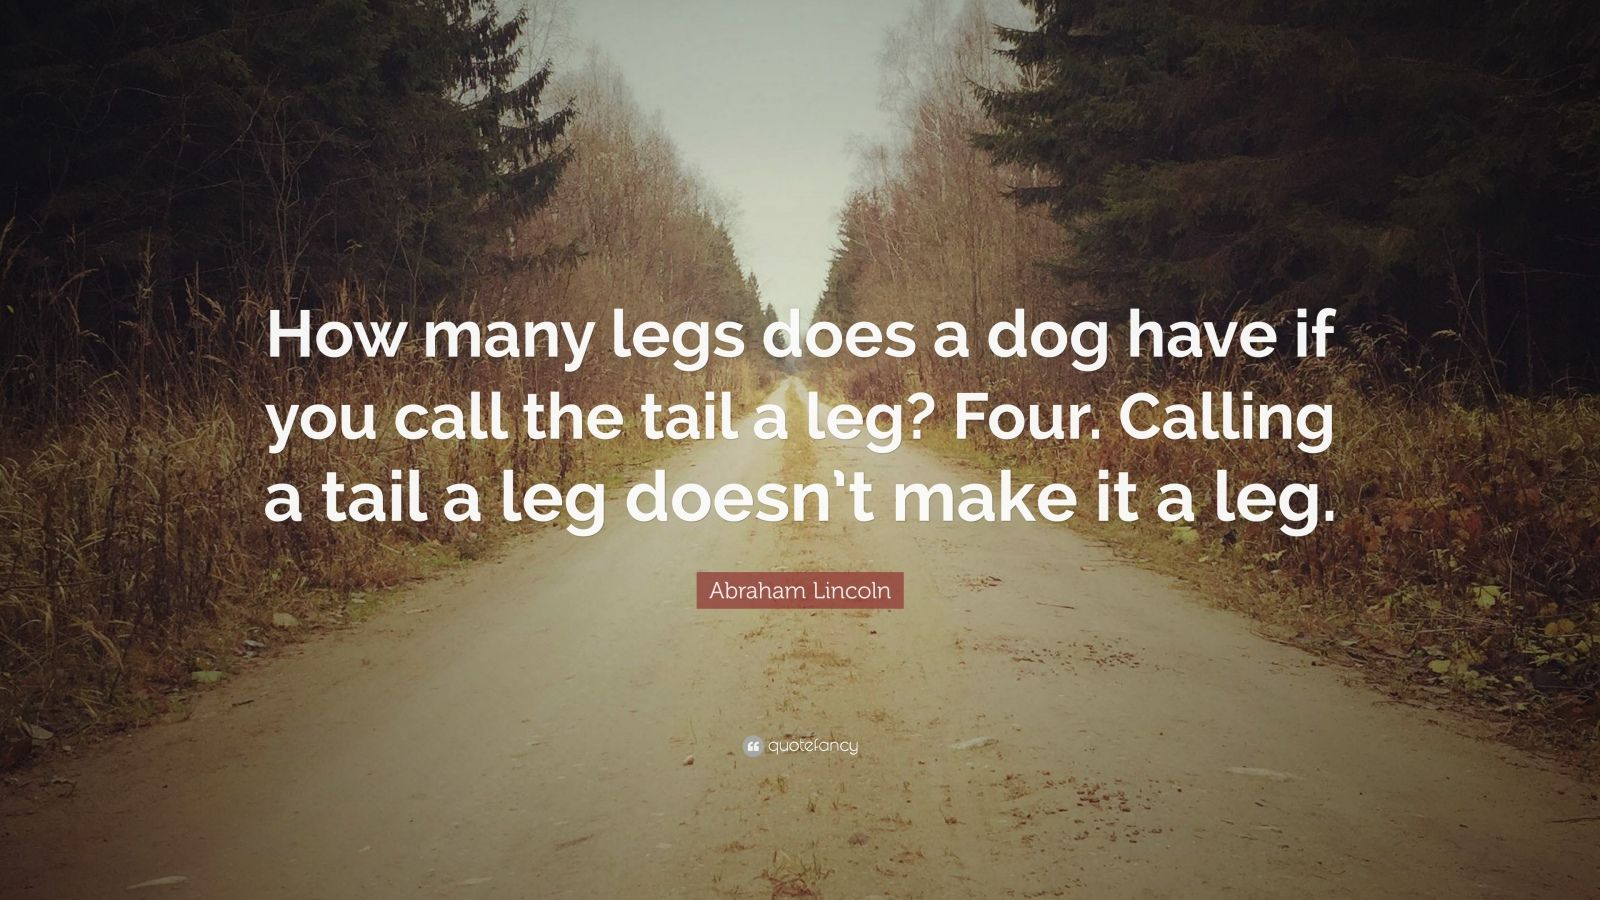 """Abraham Lincoln Quote: """"How many legs does a dog have if you call the tail a leg? Four. Calling a tail a leg doesn't make it a leg."""""""